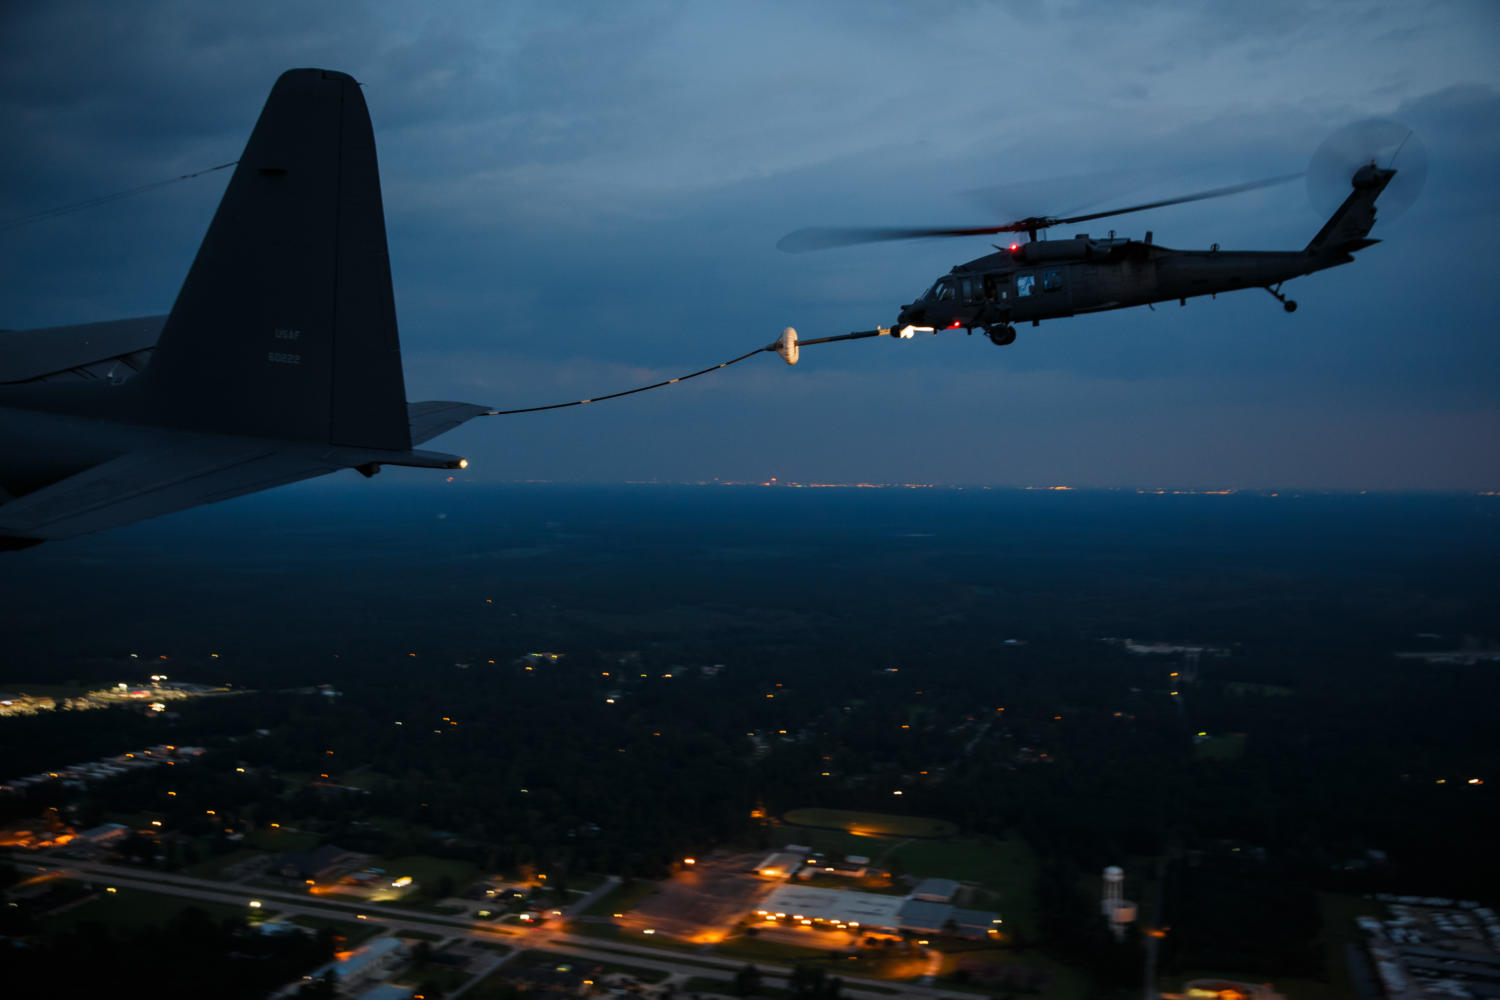 A military search and rescue helicopter is refueling mid-flight before resuming nighttime missions over areas flooded in the aftermath of Tropical Storm Harvey in Lumberton, Texas, on Thursday, Aug. 31, 2017. (Marcus Yam/Los Angeles Times/TNS)